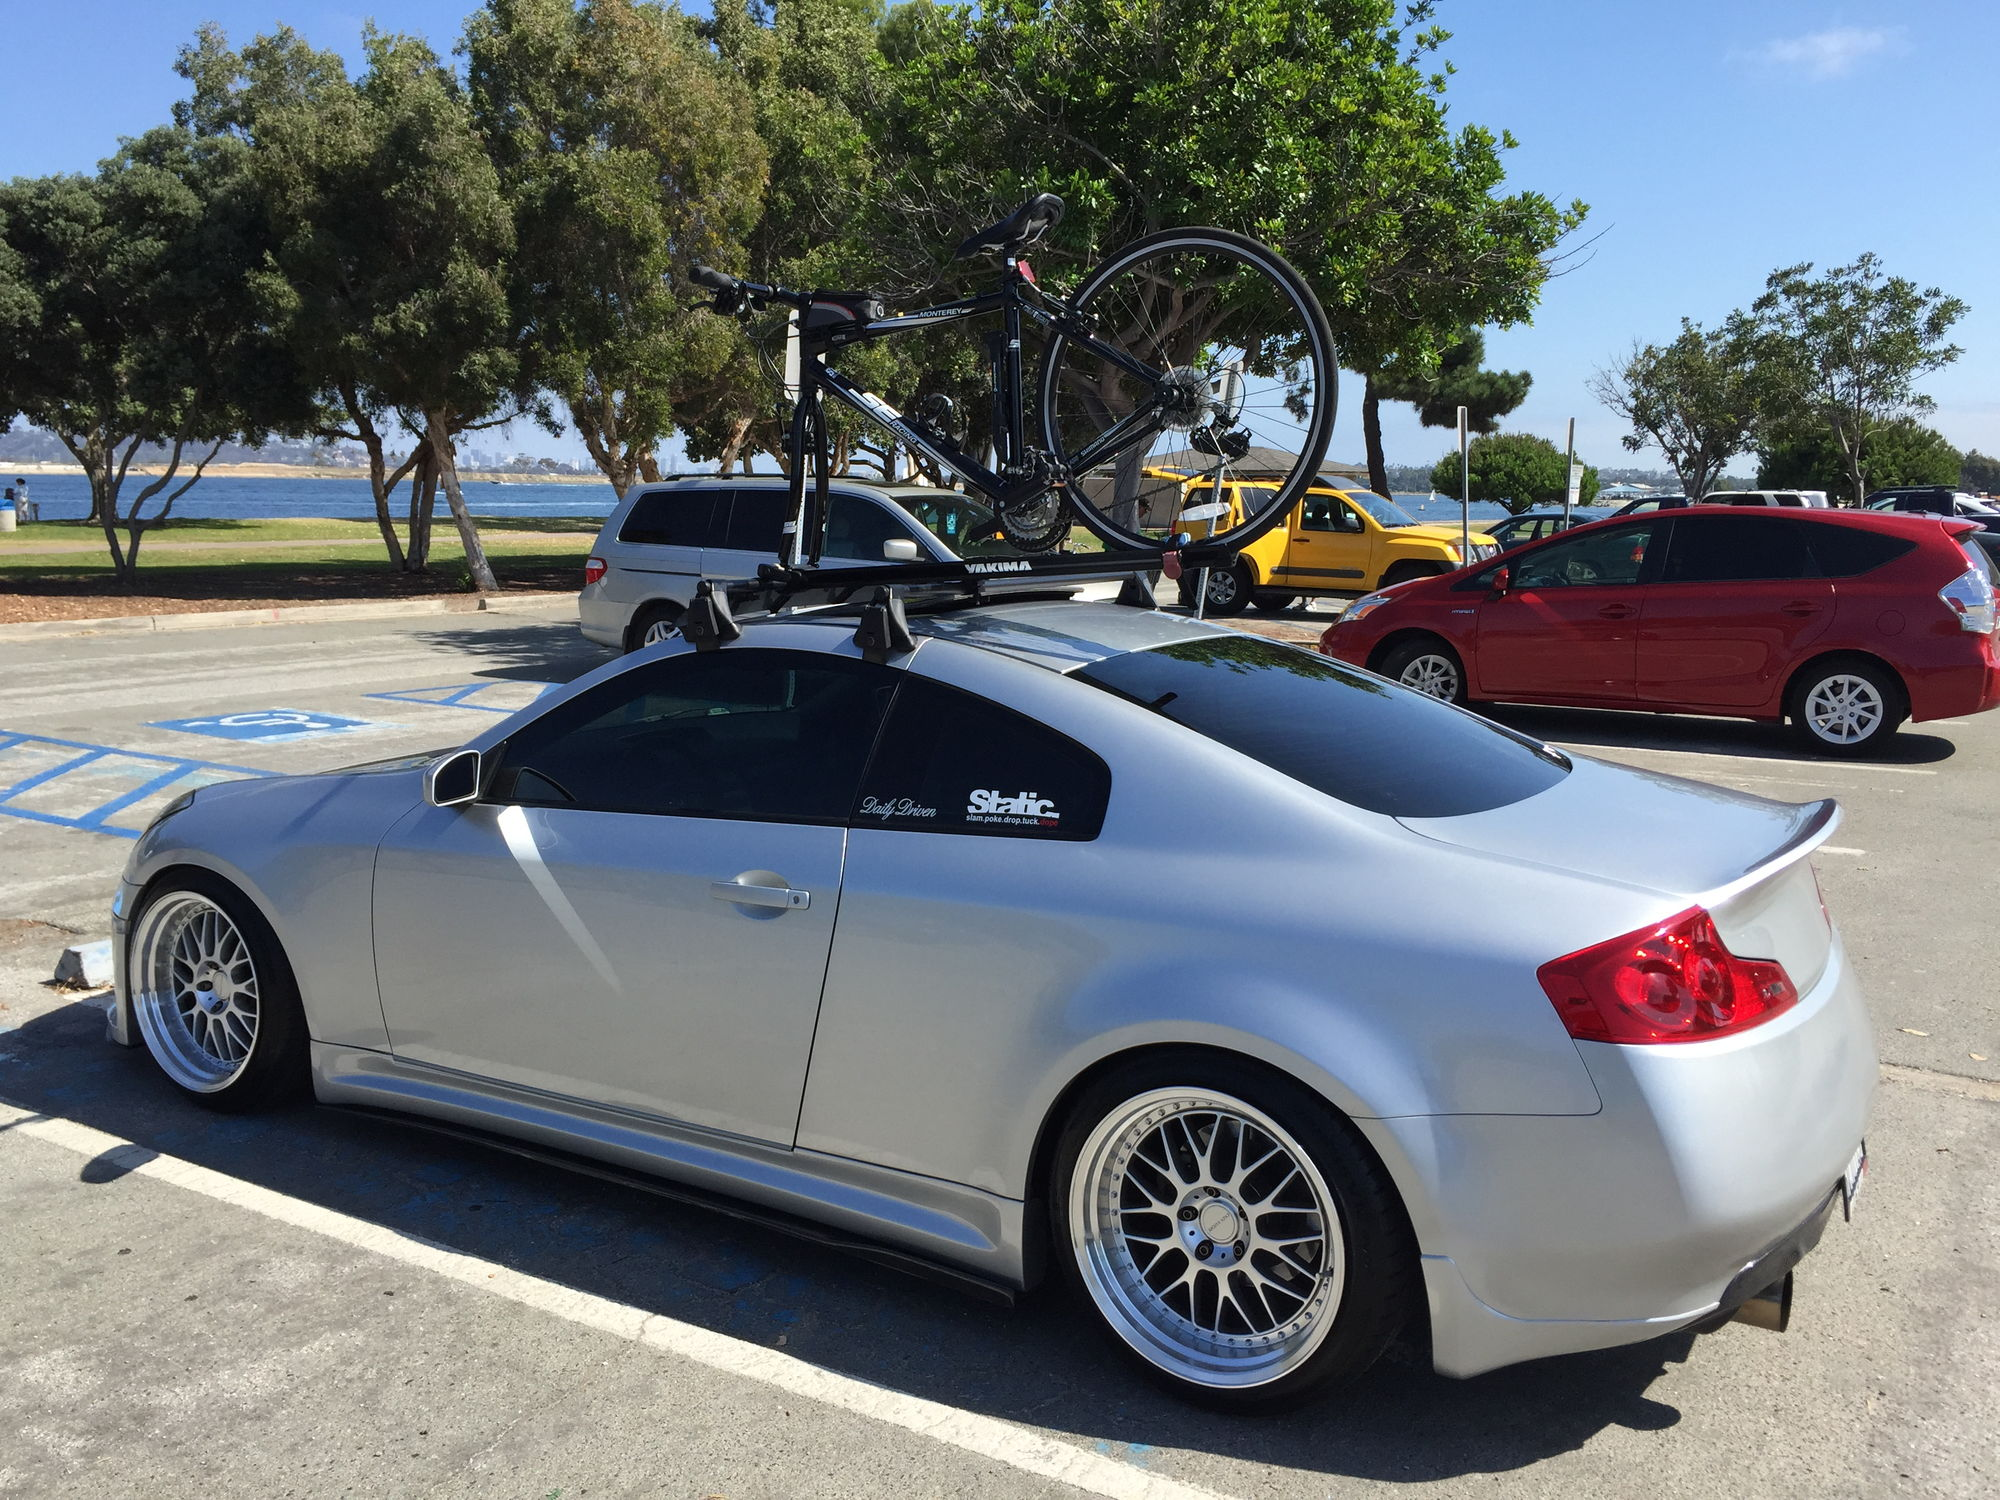 New Infiniti G35 Coupe >> FS: Coupe Yakima roof rack - G35Driver - Infiniti G35 & G37 Forum Discussion